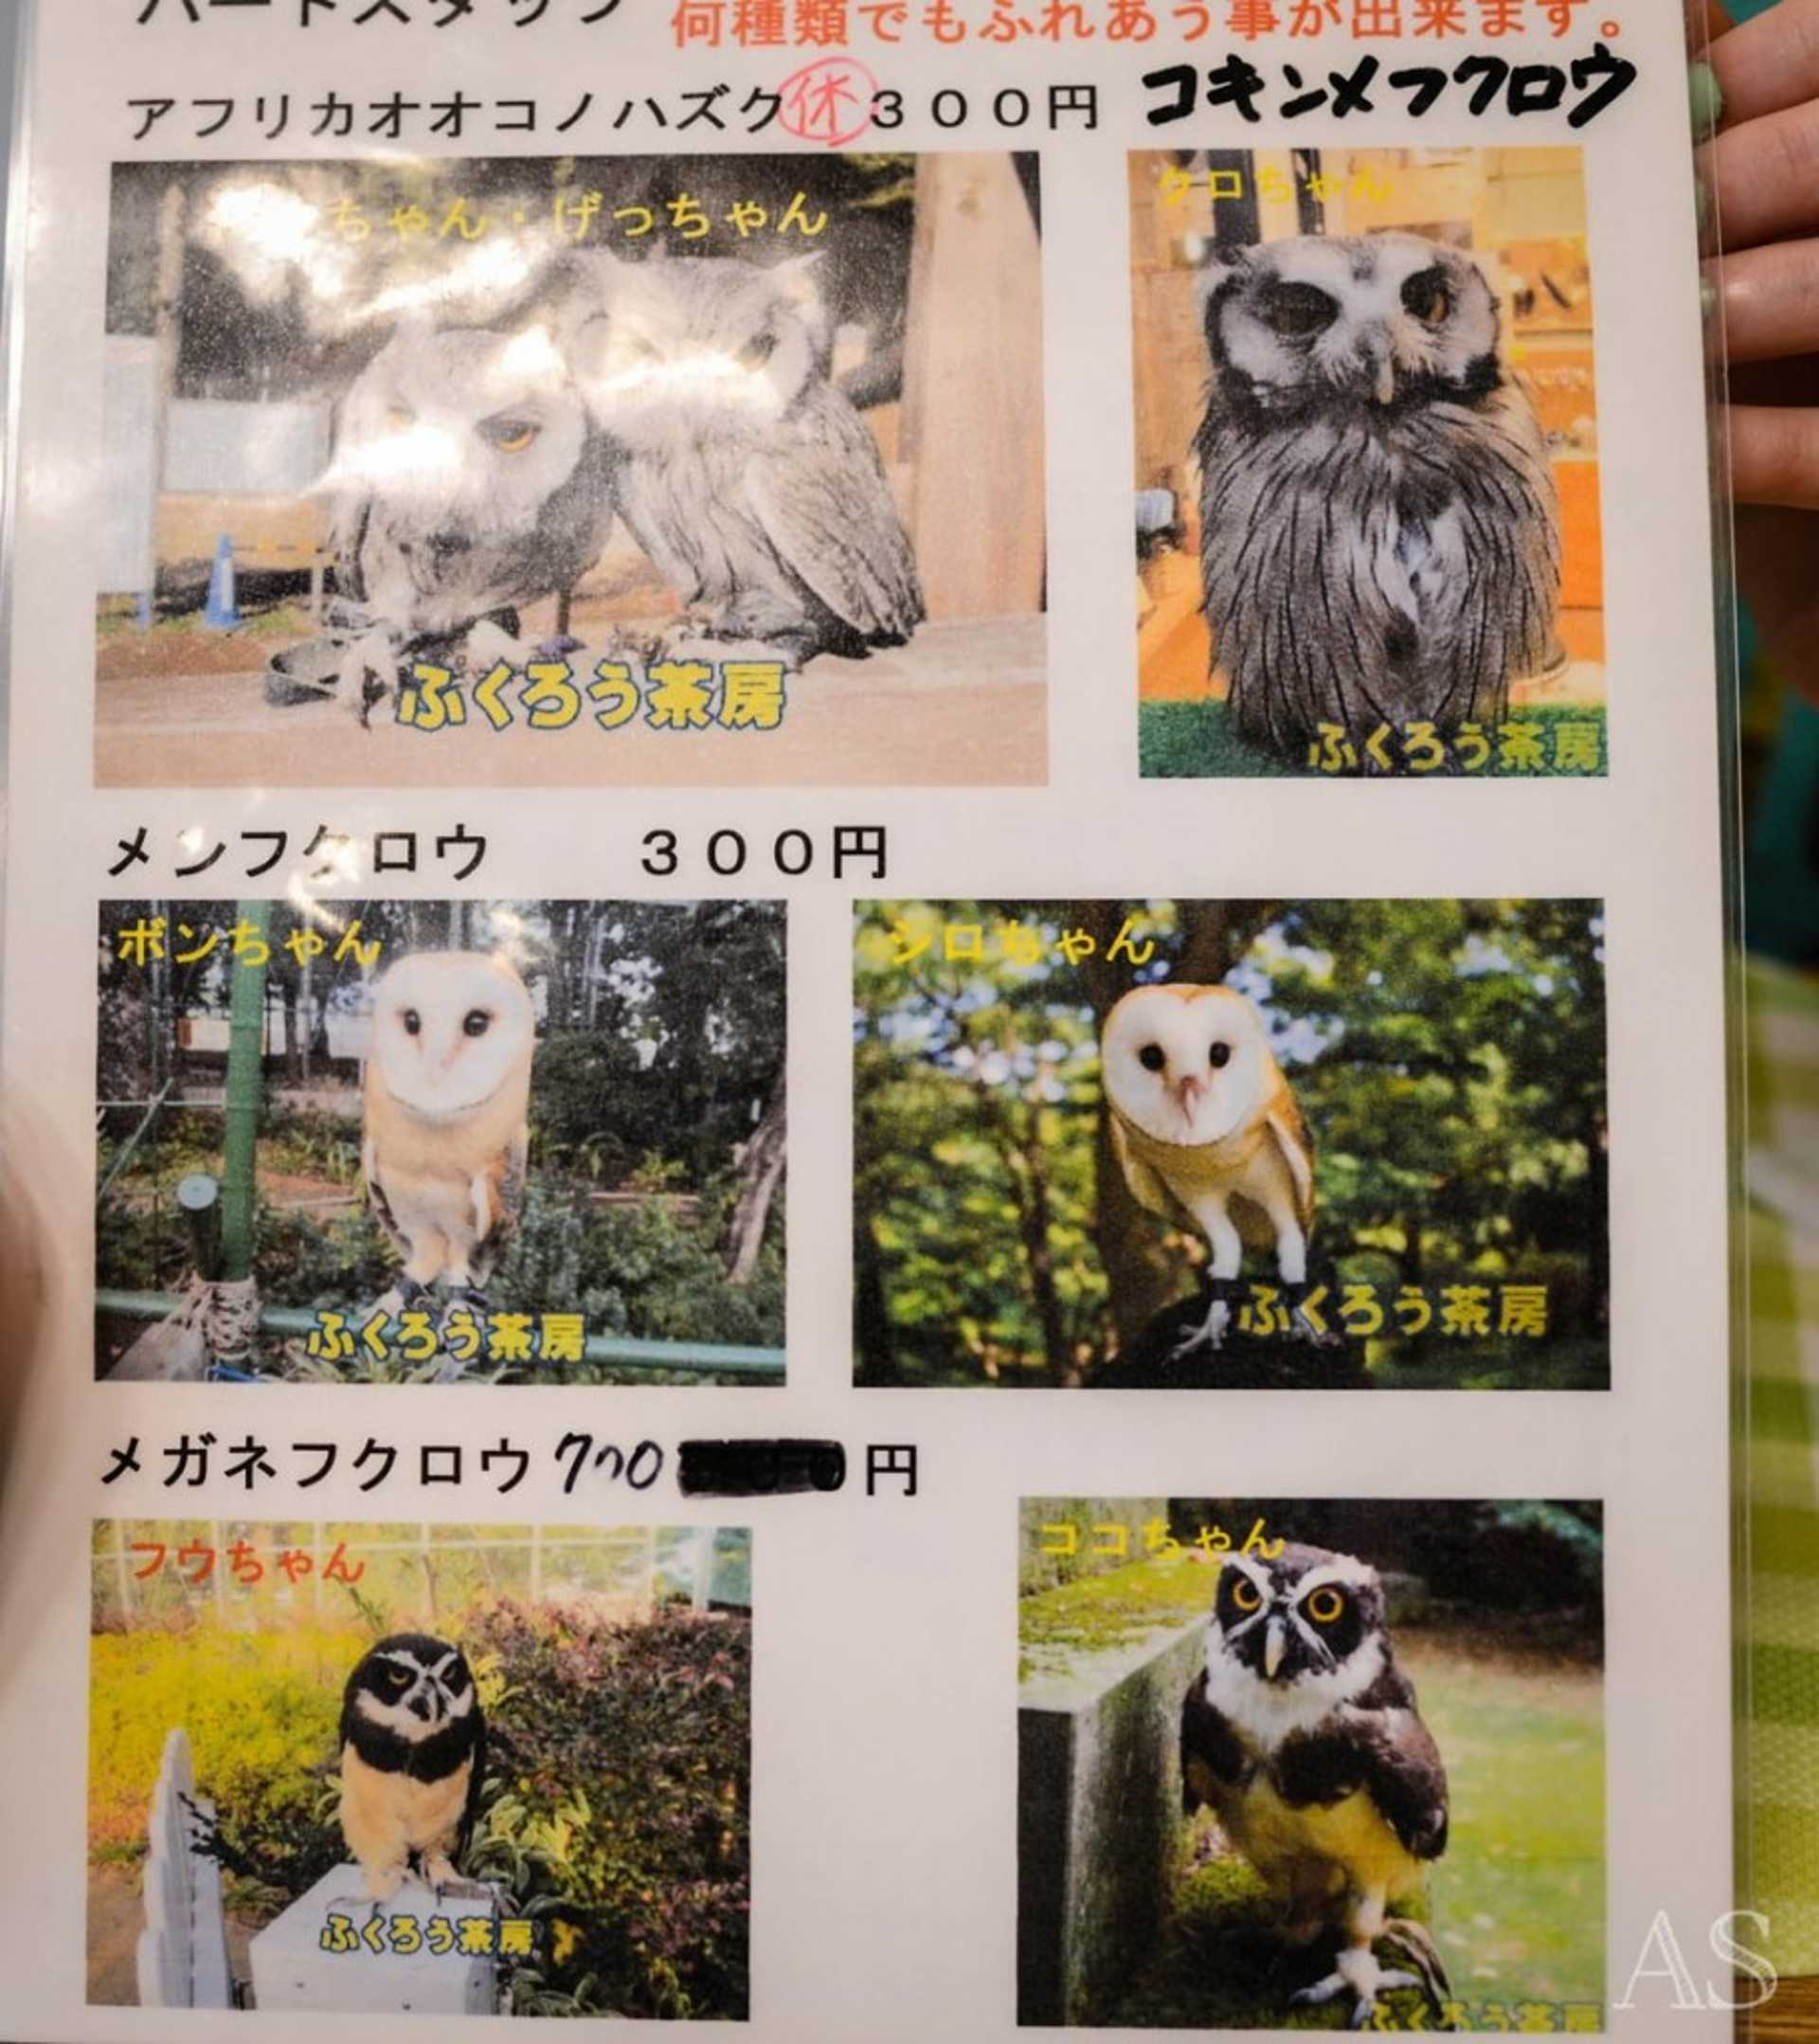 Prices of the owl holding ( varies from species to species)